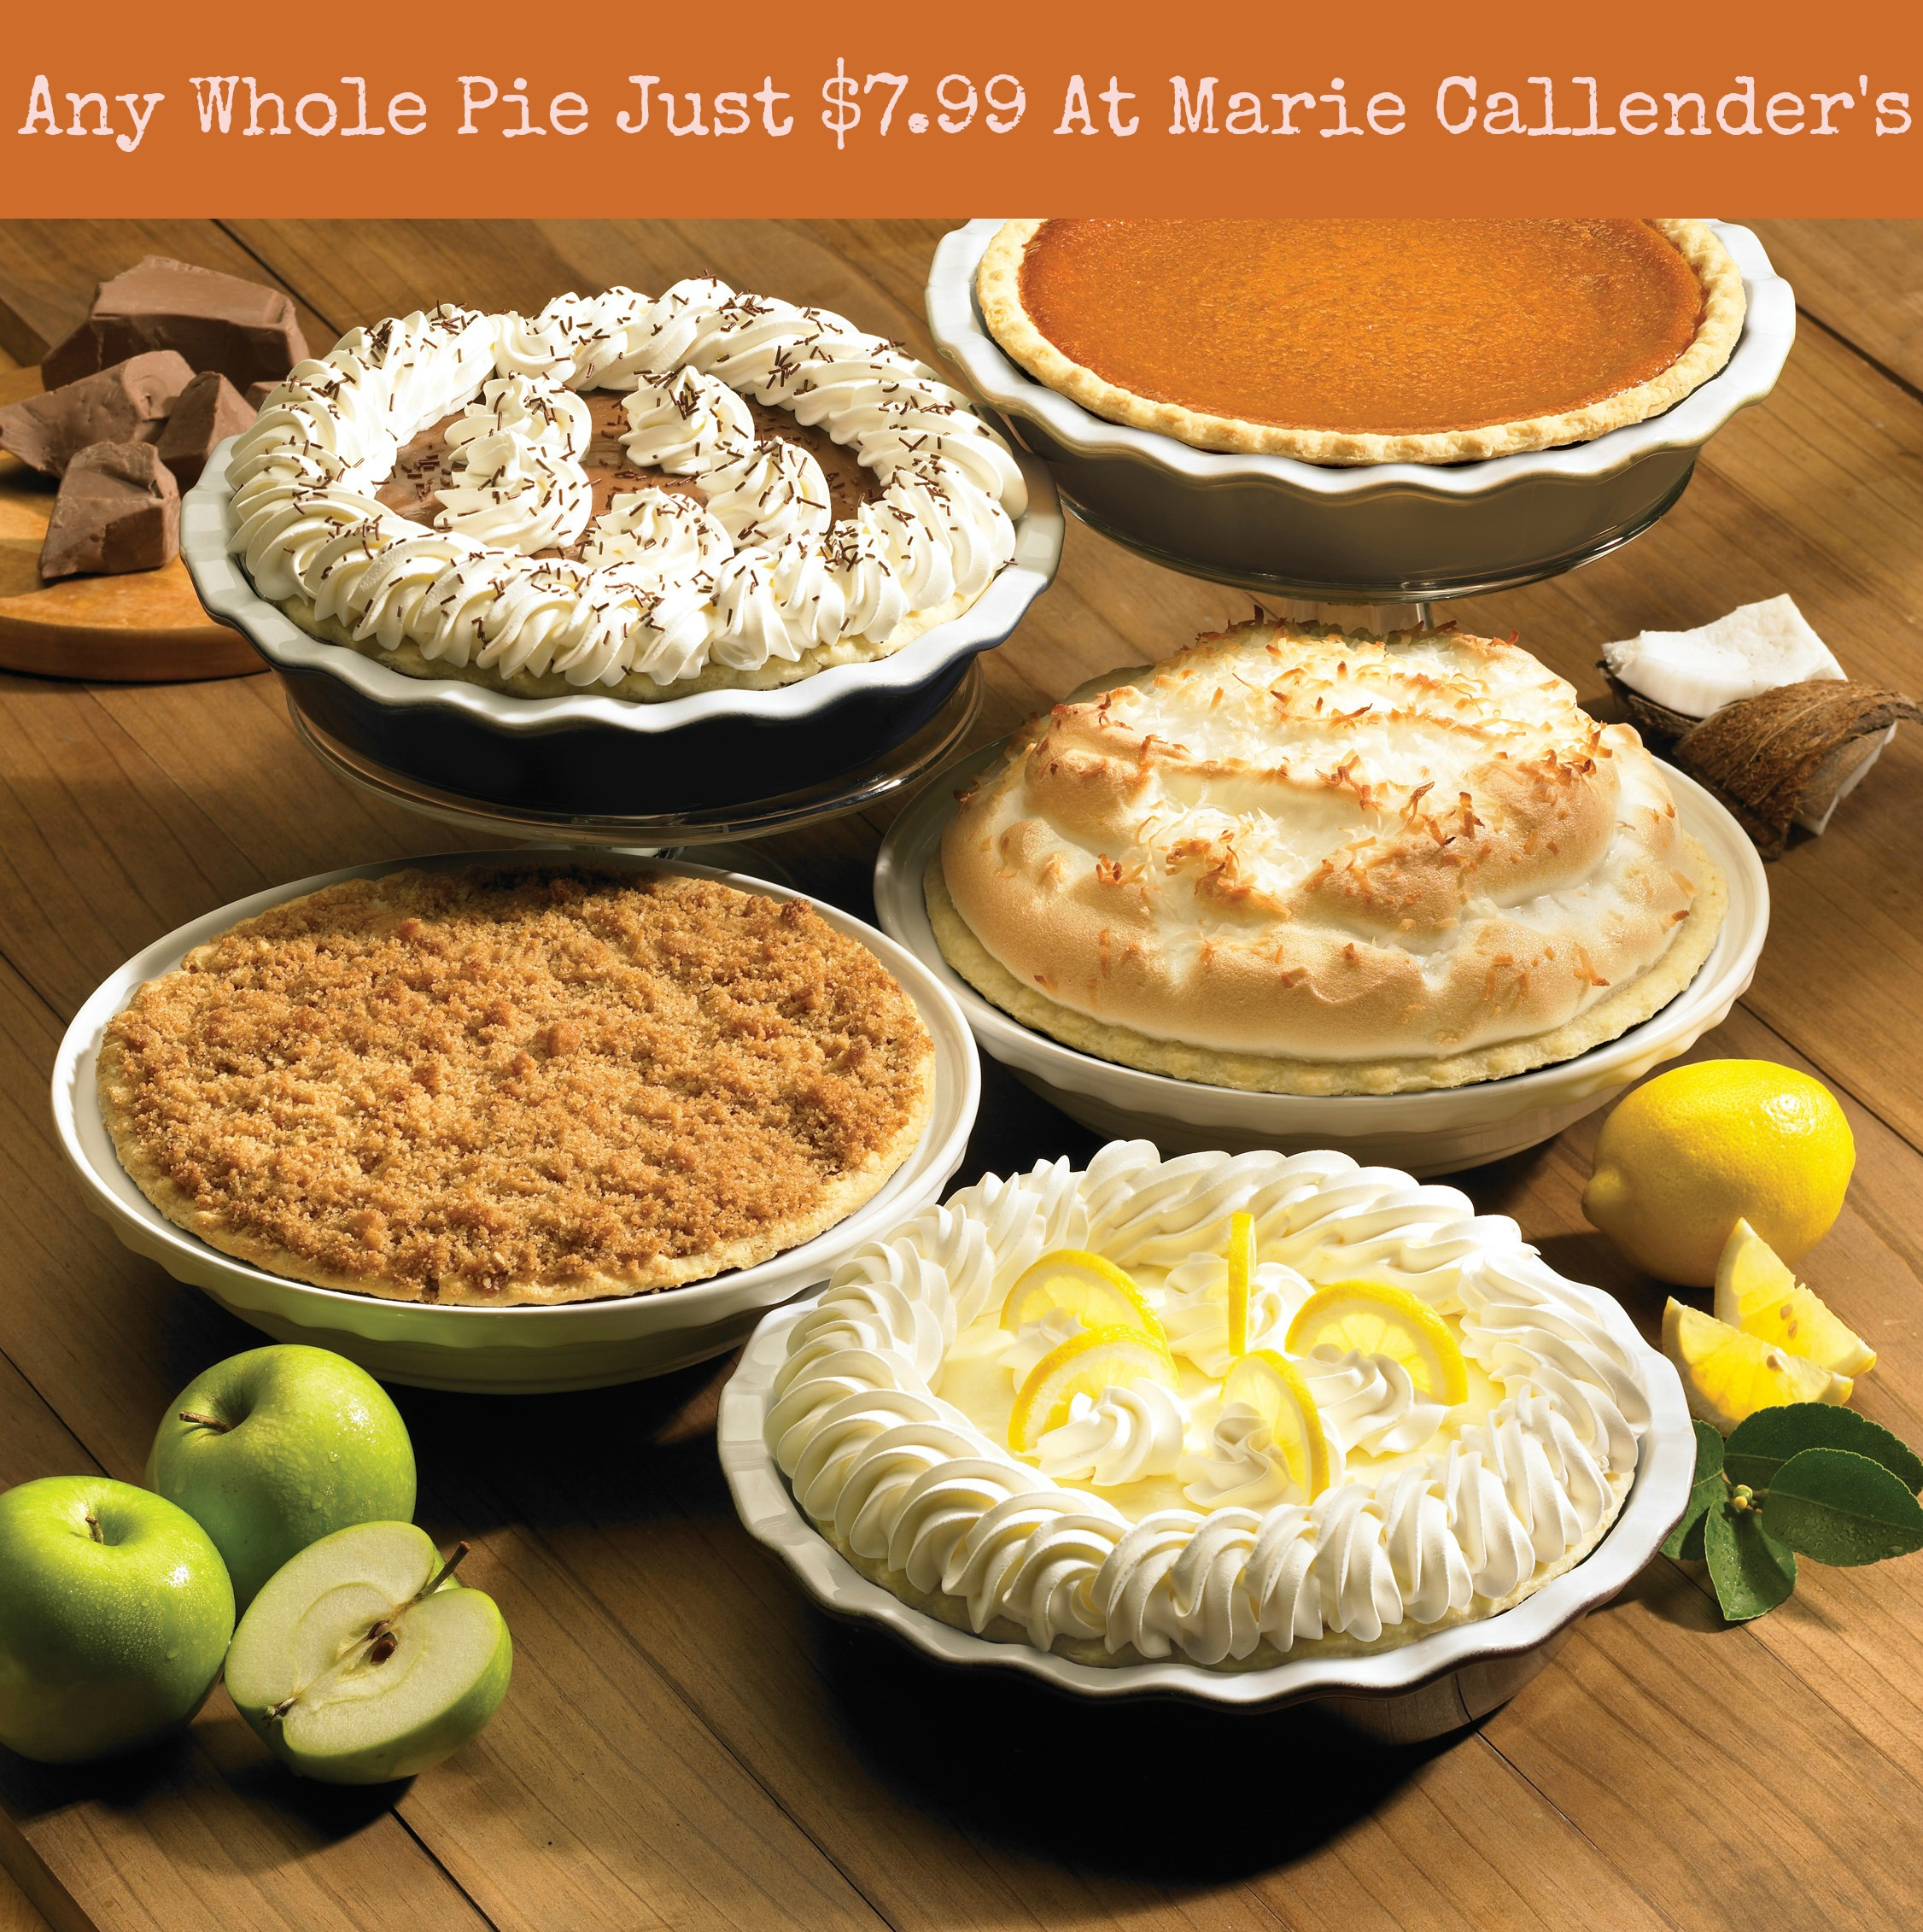 Any Whole Pie Only $7.99 At Marie Callenders + a Giveaway - EatDrinkOC